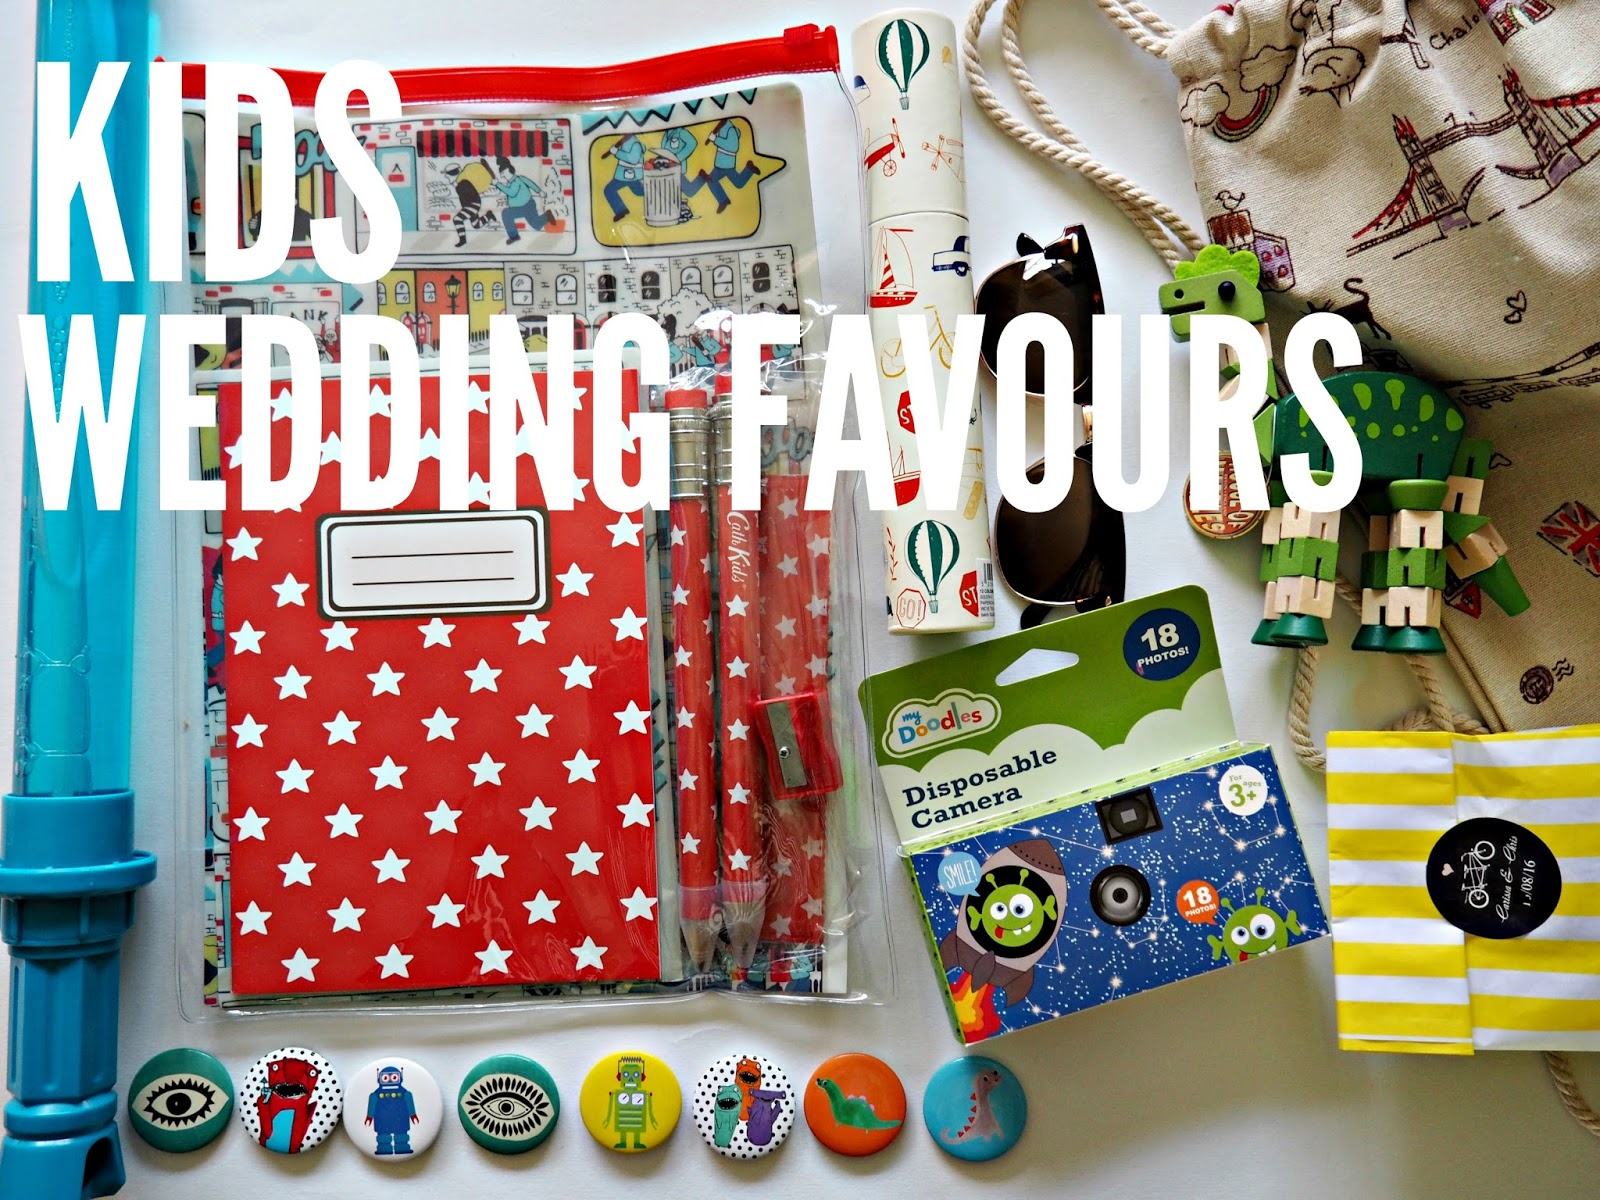 Kids Wedding Favours | Little Likely Lads